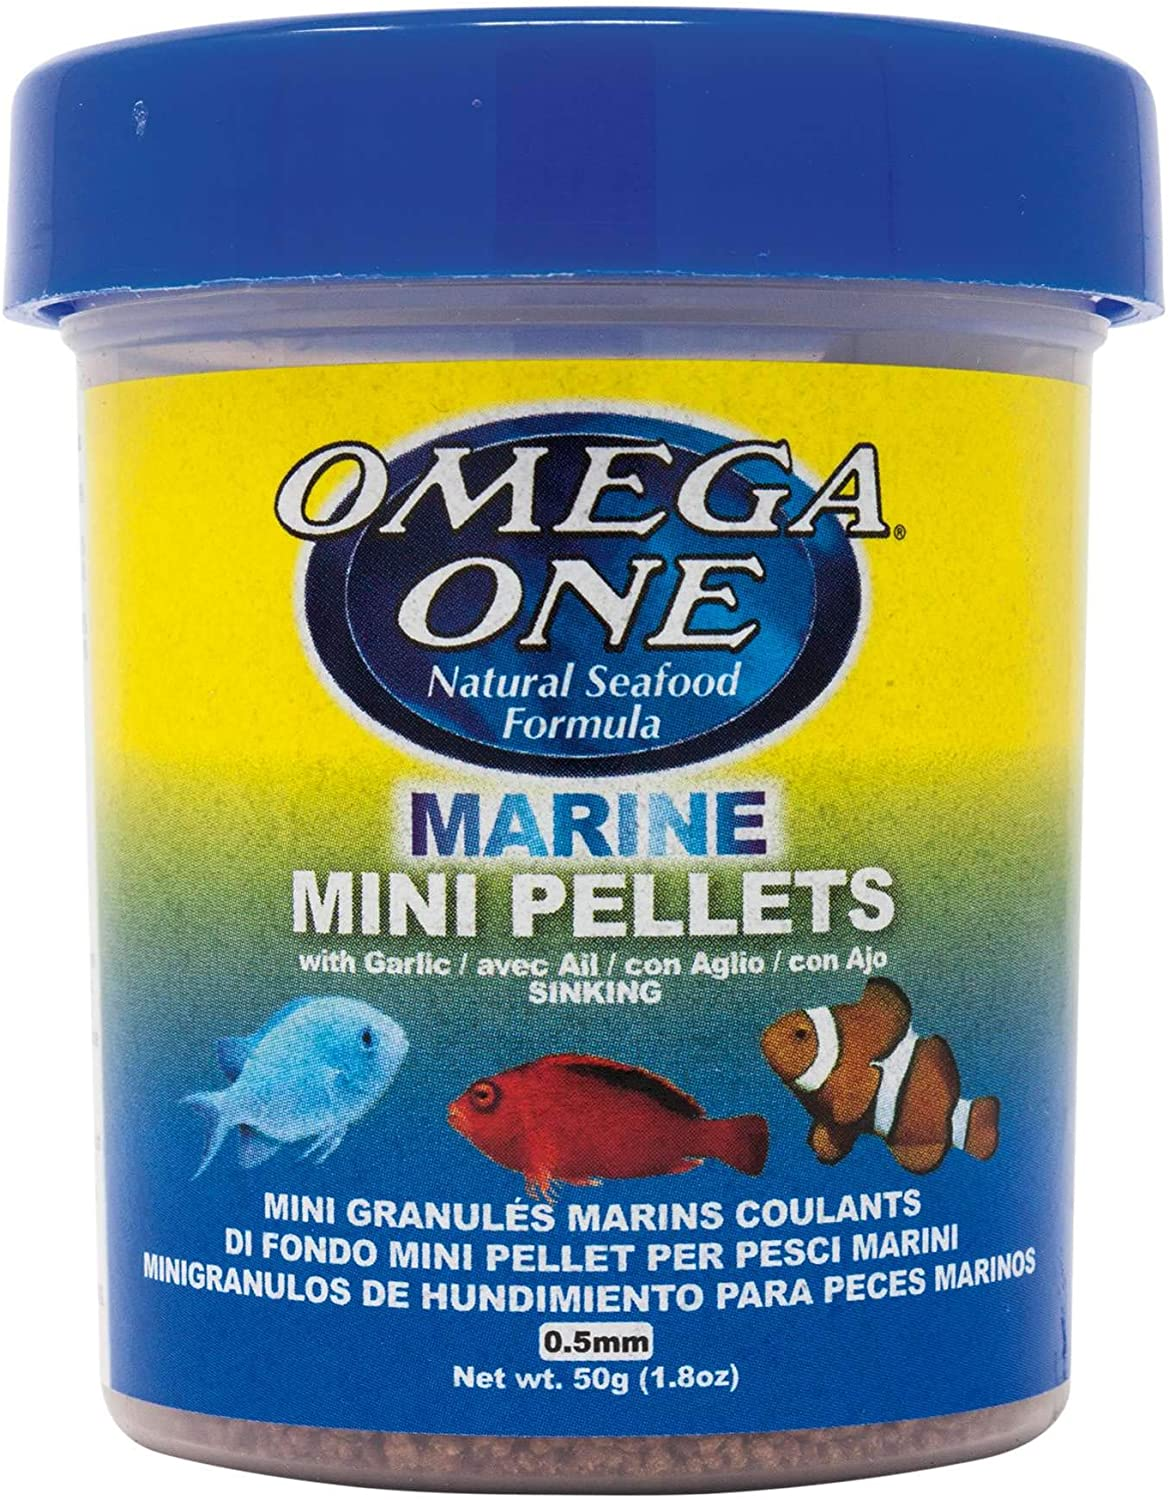 Omega One Garlic Marine Pellets, Sinking